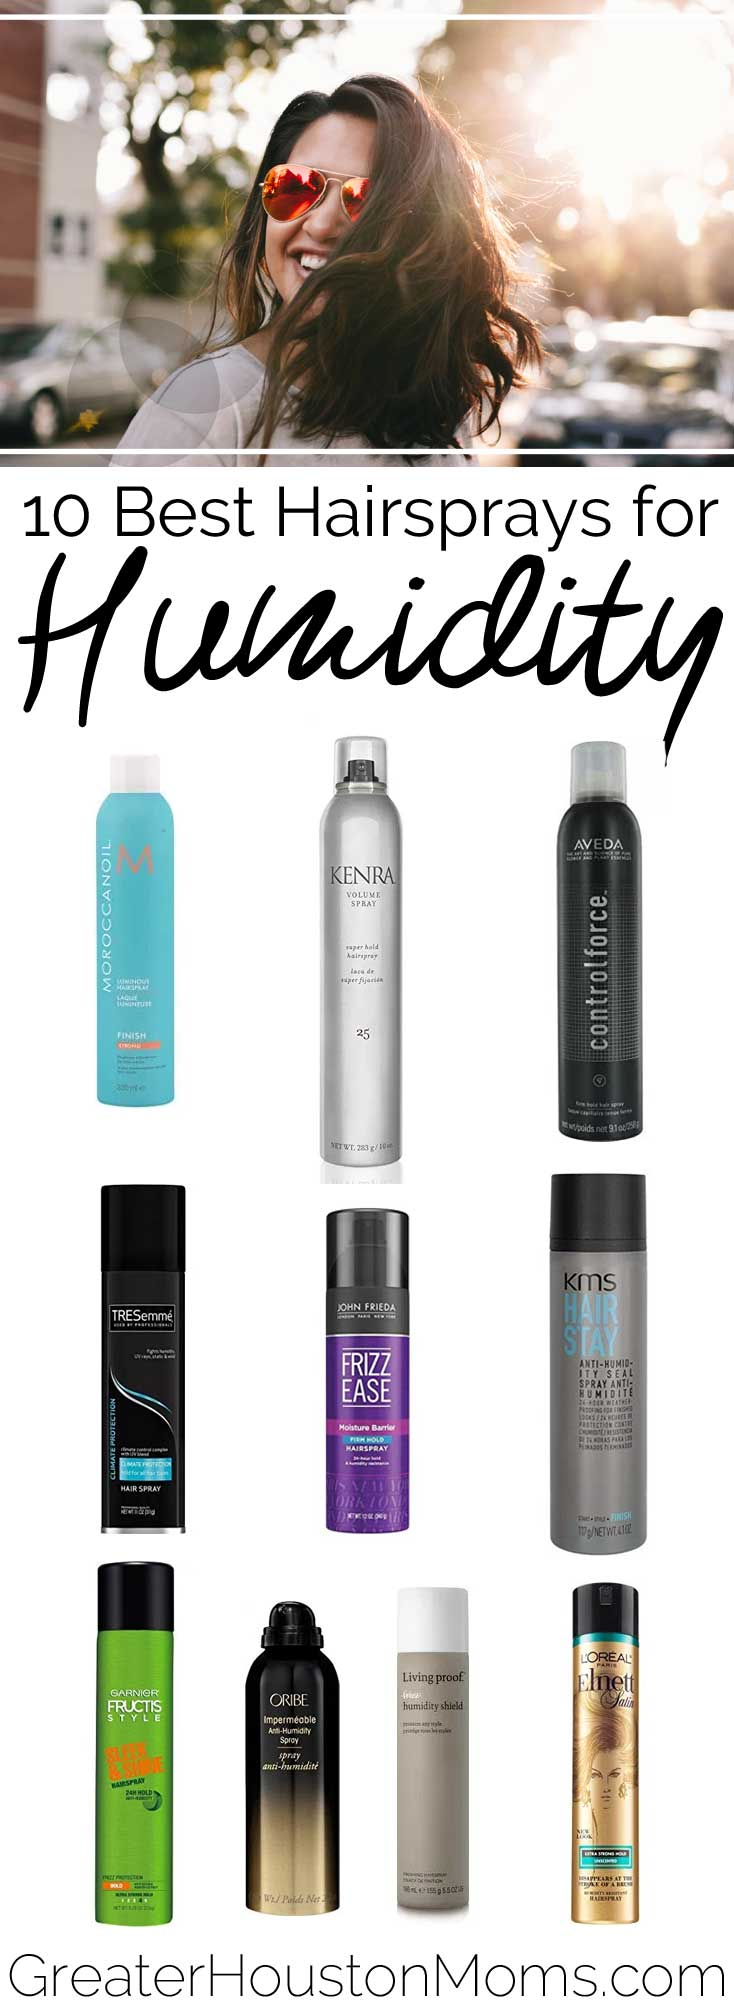 10 Best Hairsprays for Houston Humidity